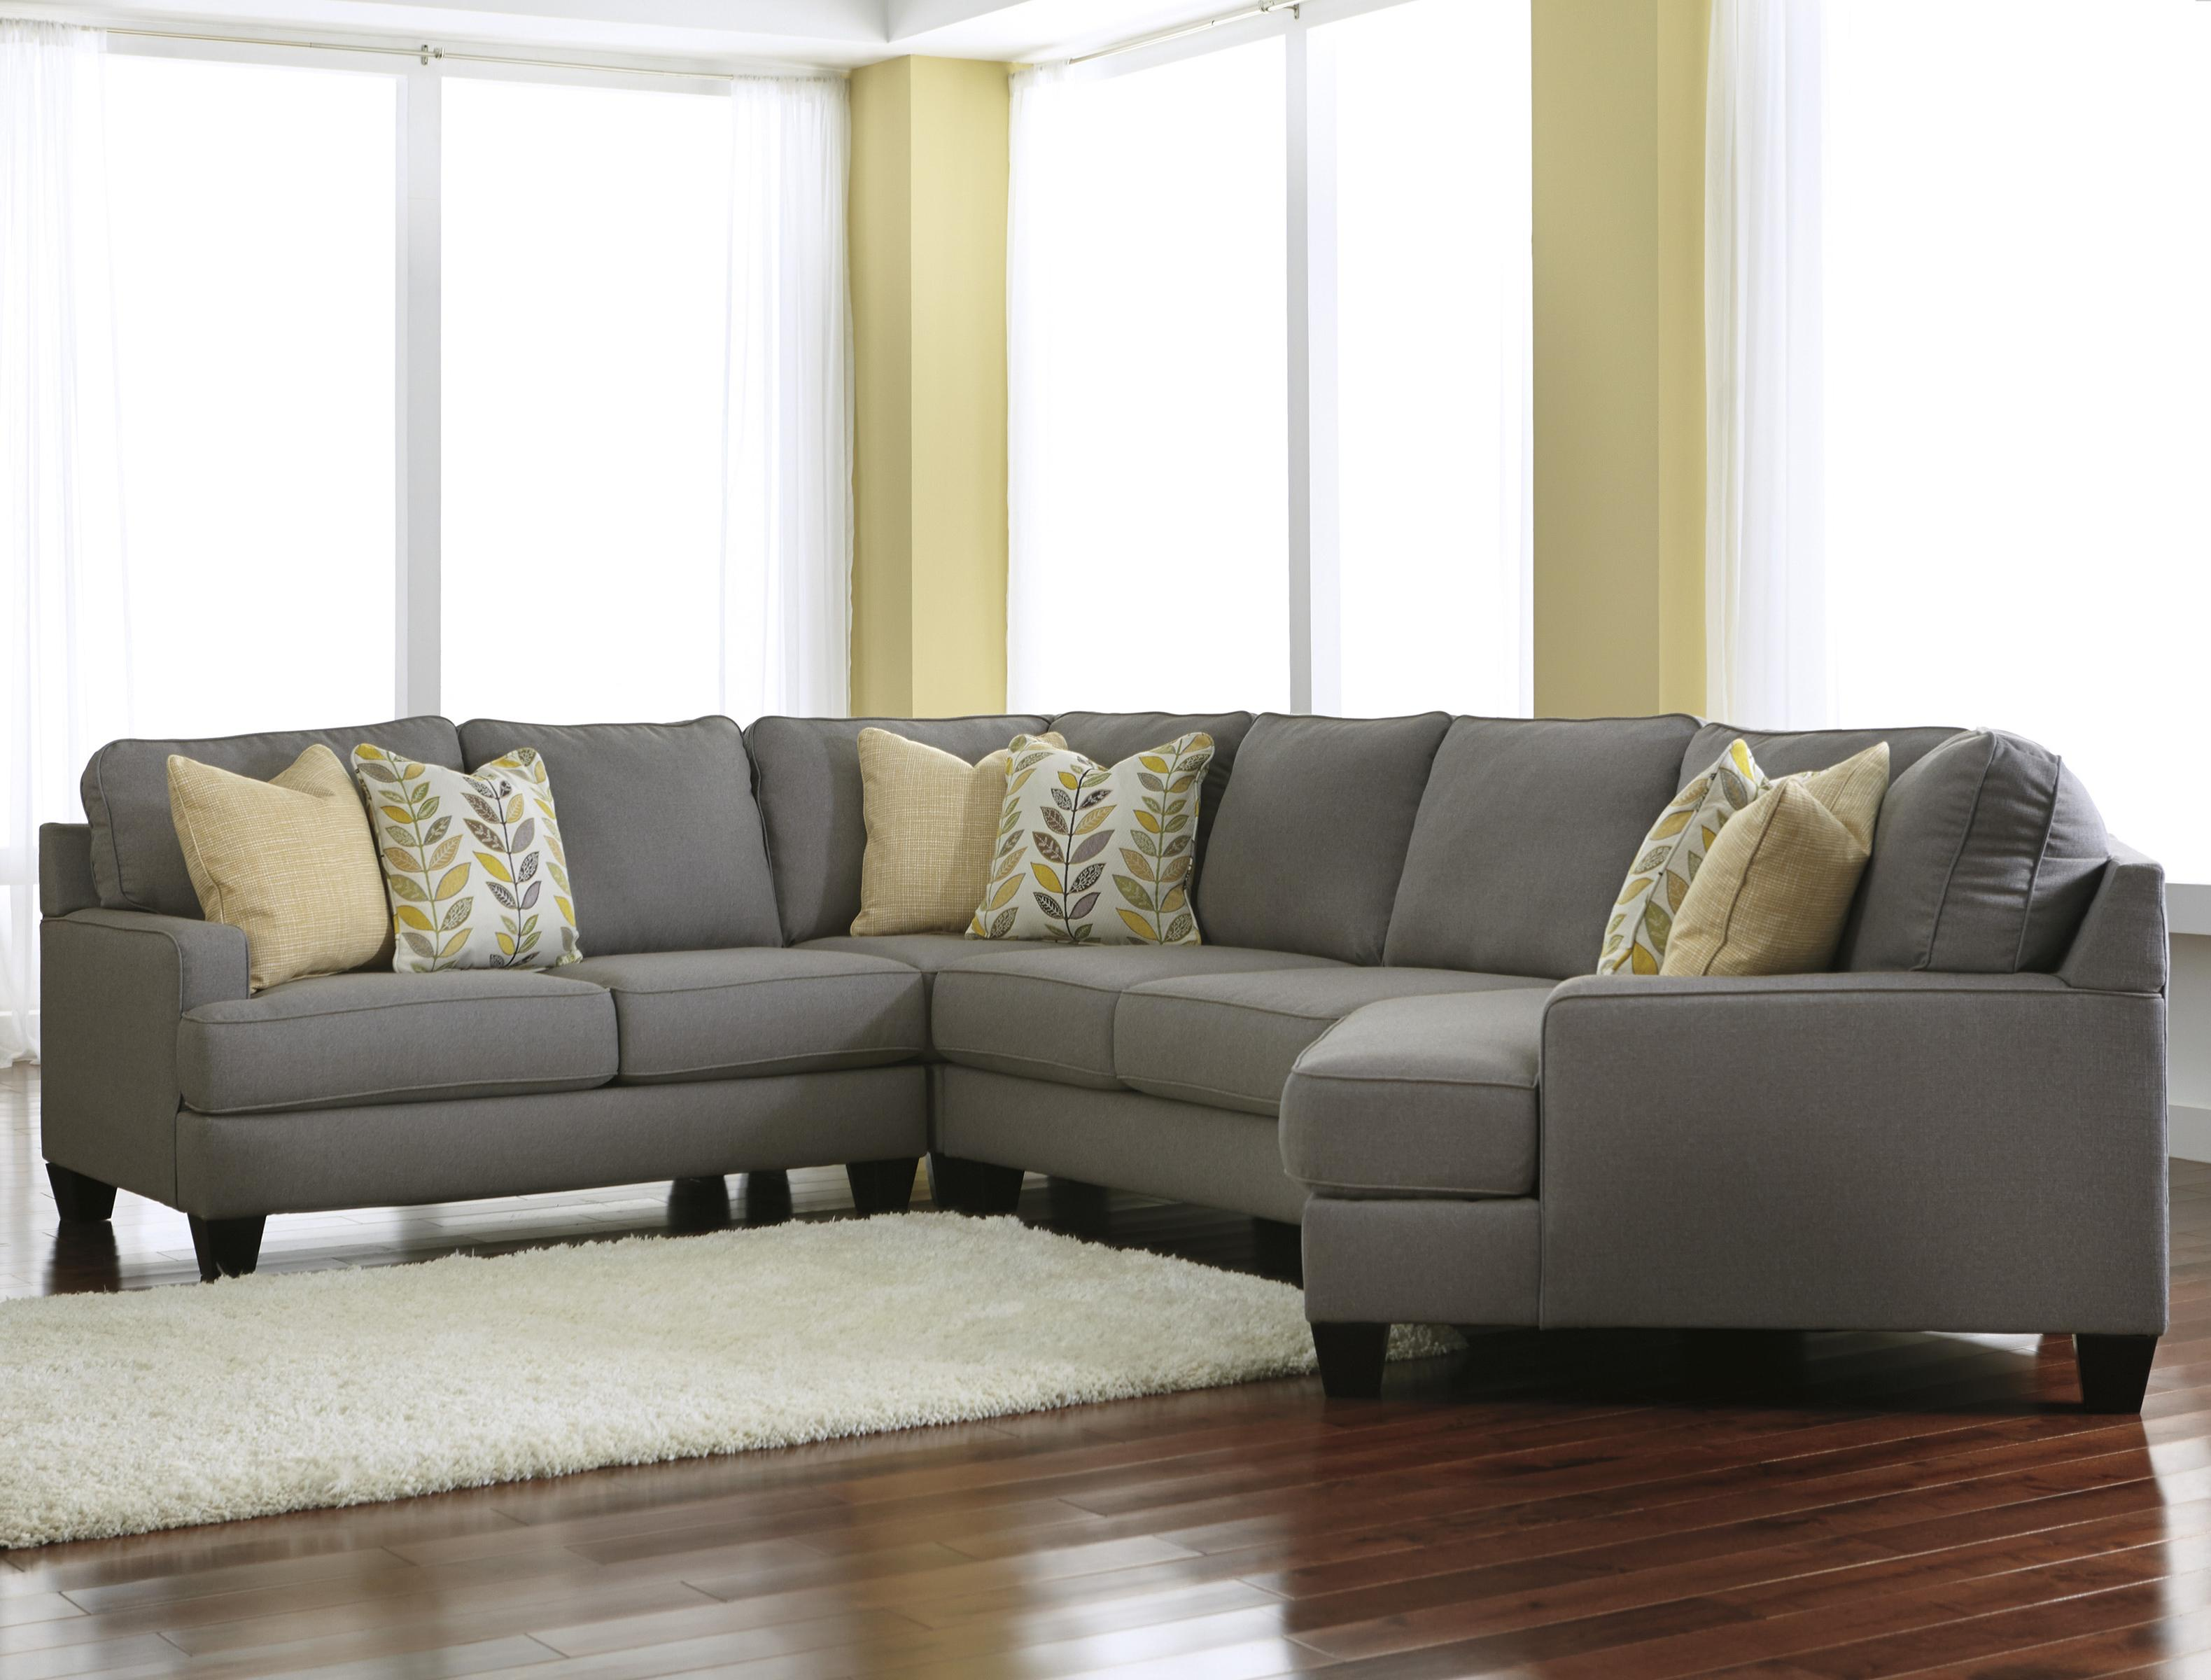 sofa picture and sectional collection cuddler chaise runmehome with